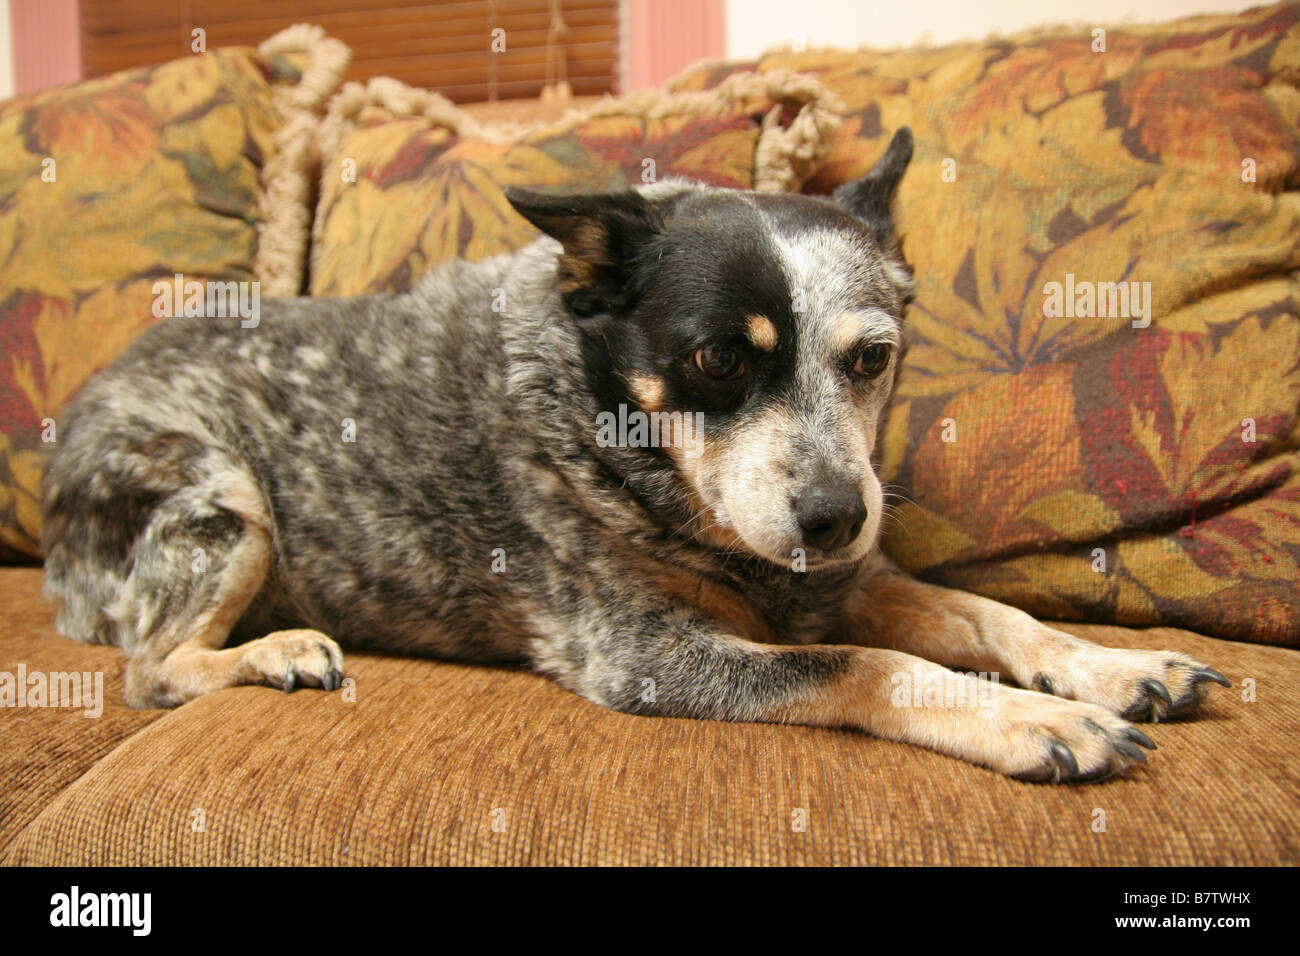 aussie on sofa - Stock Image